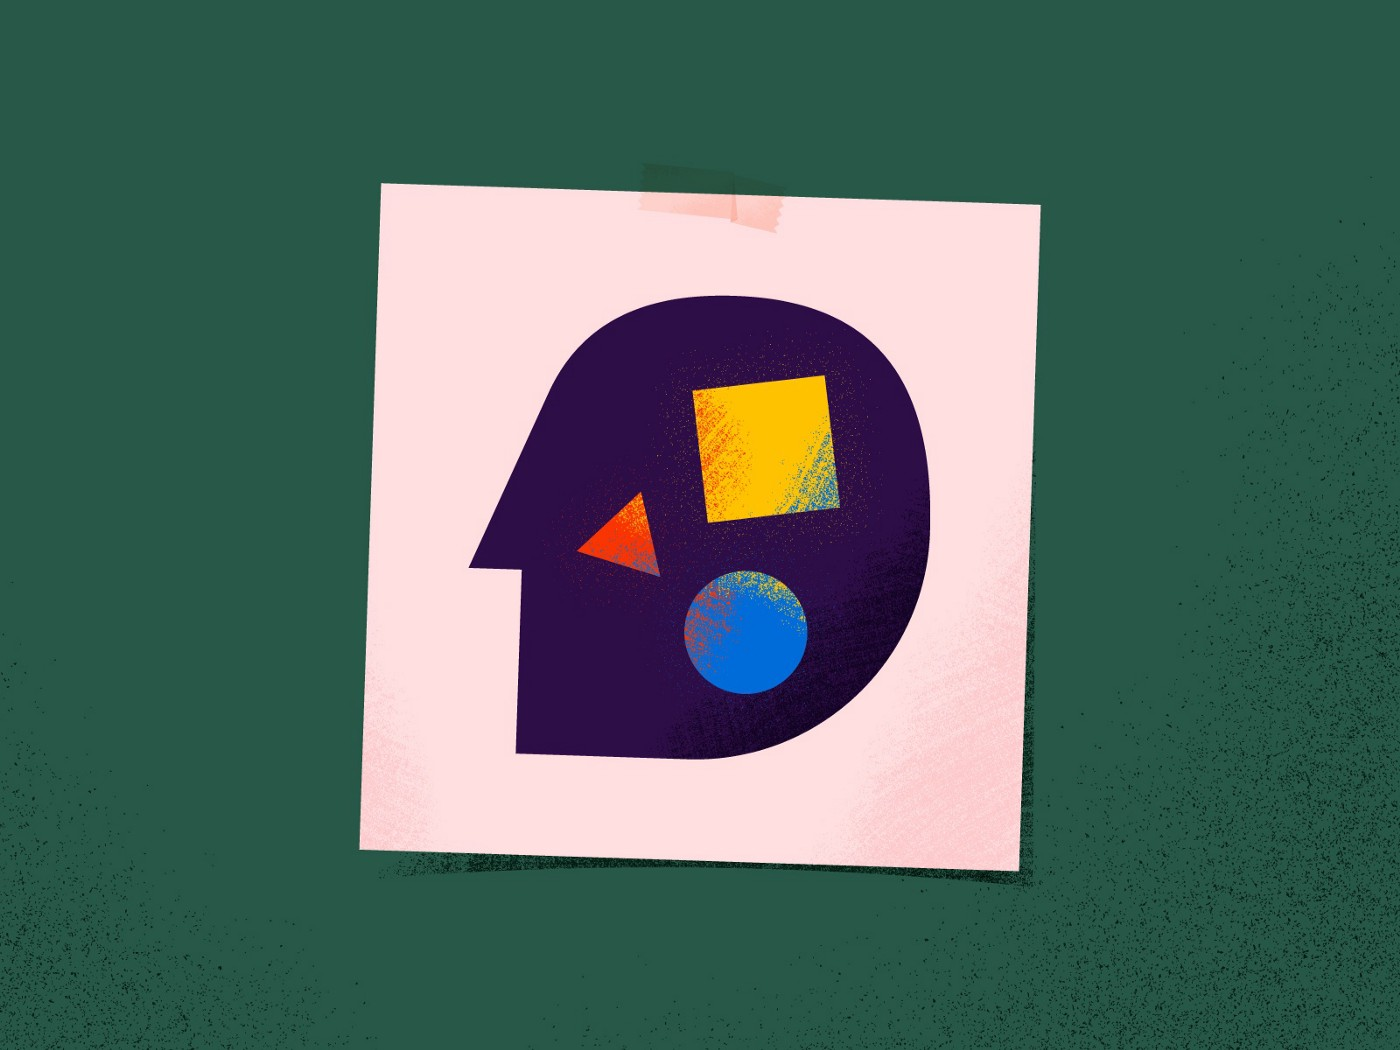 Colorful illustration on abstract shape